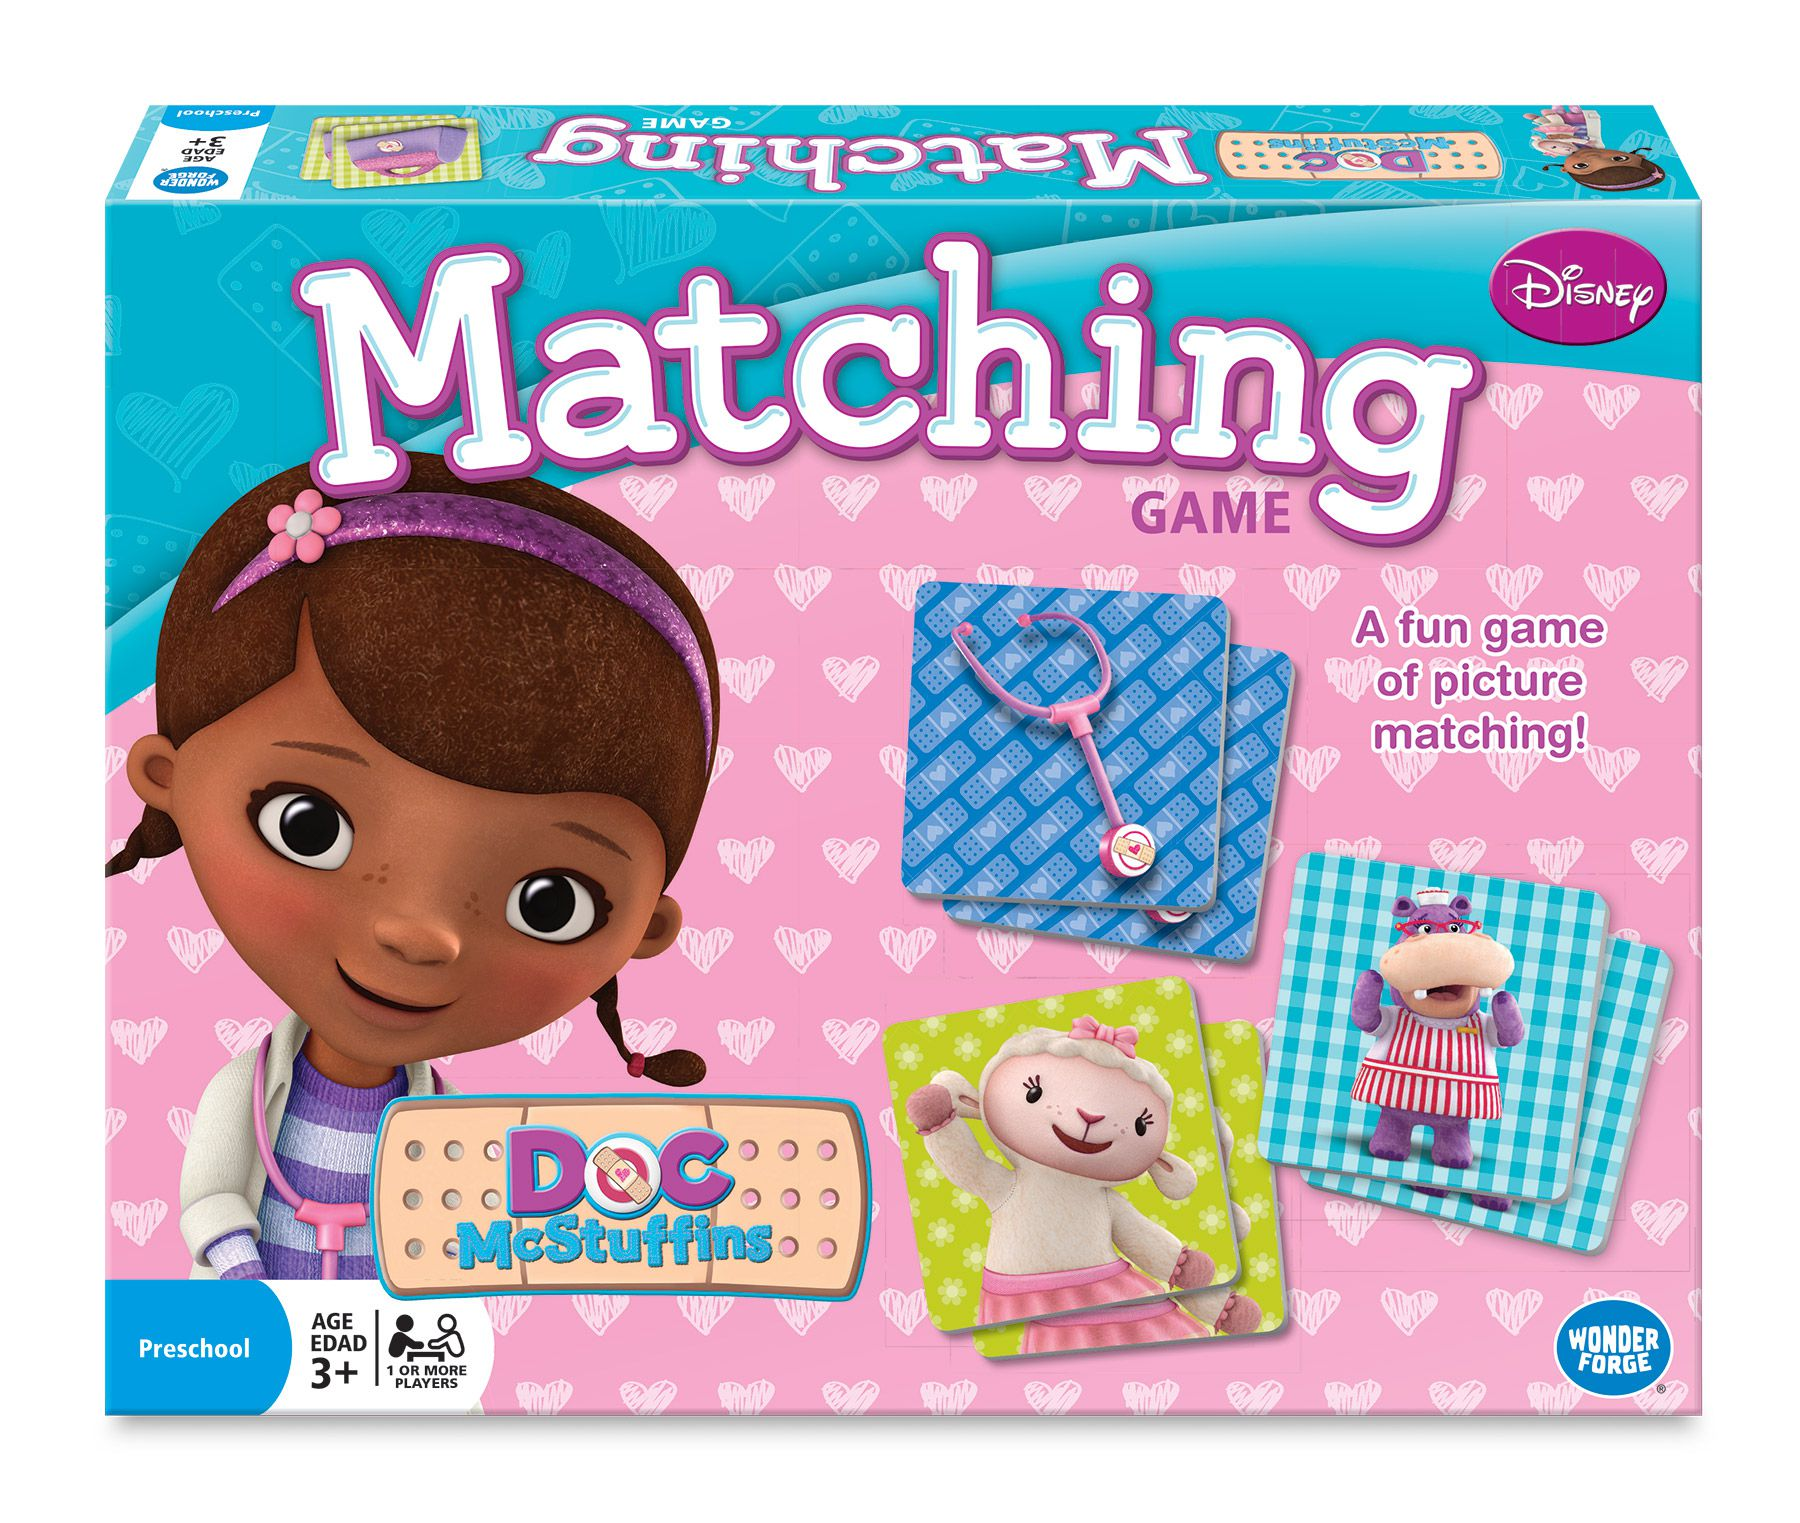 19 Best Doc McStuffins Toys and Dolls for Preschoolers